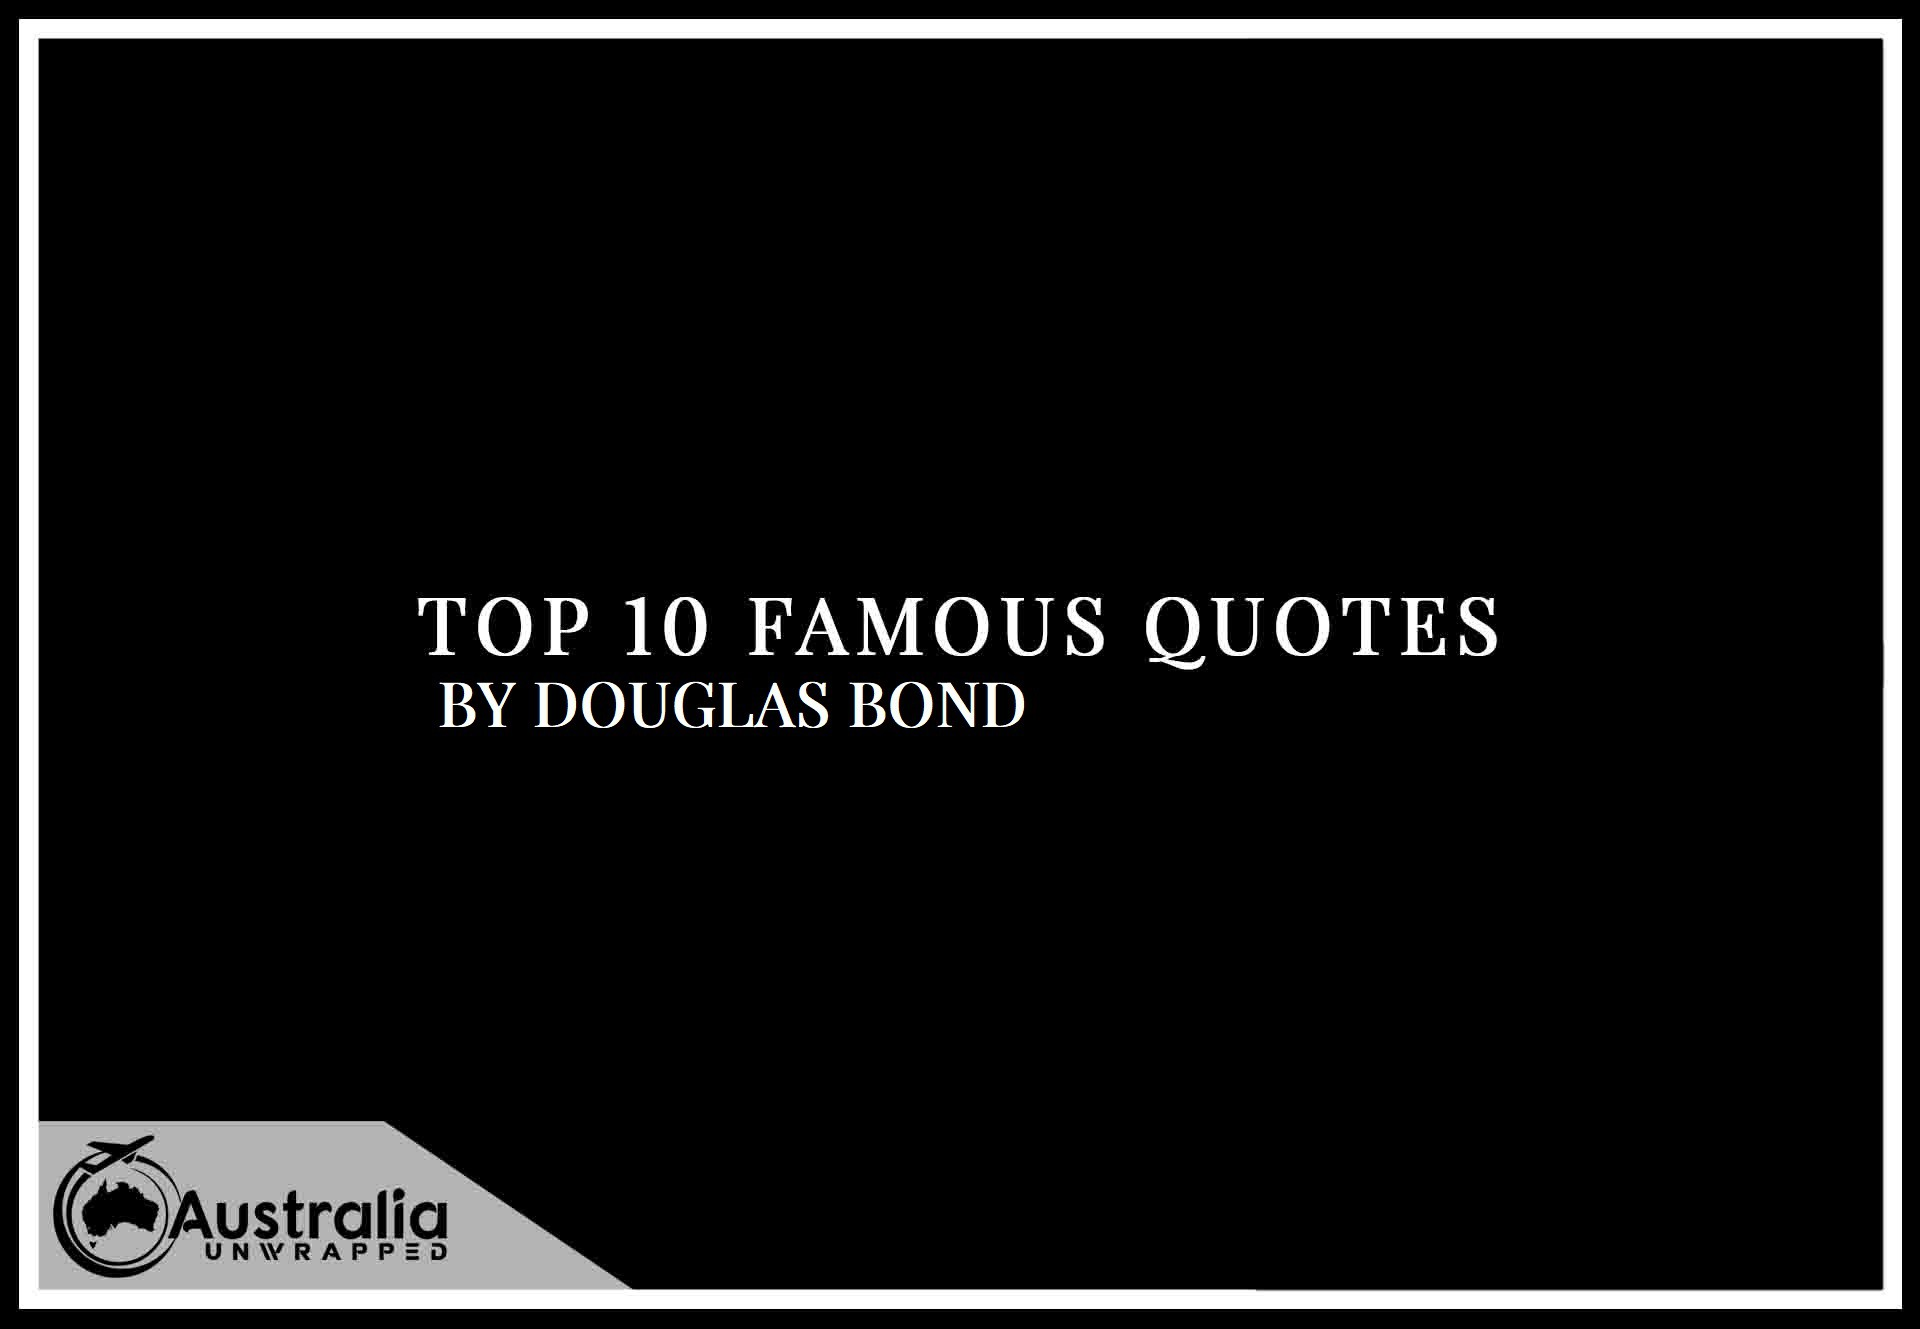 Top 10 Famous Quotes by Author Douglas Bond